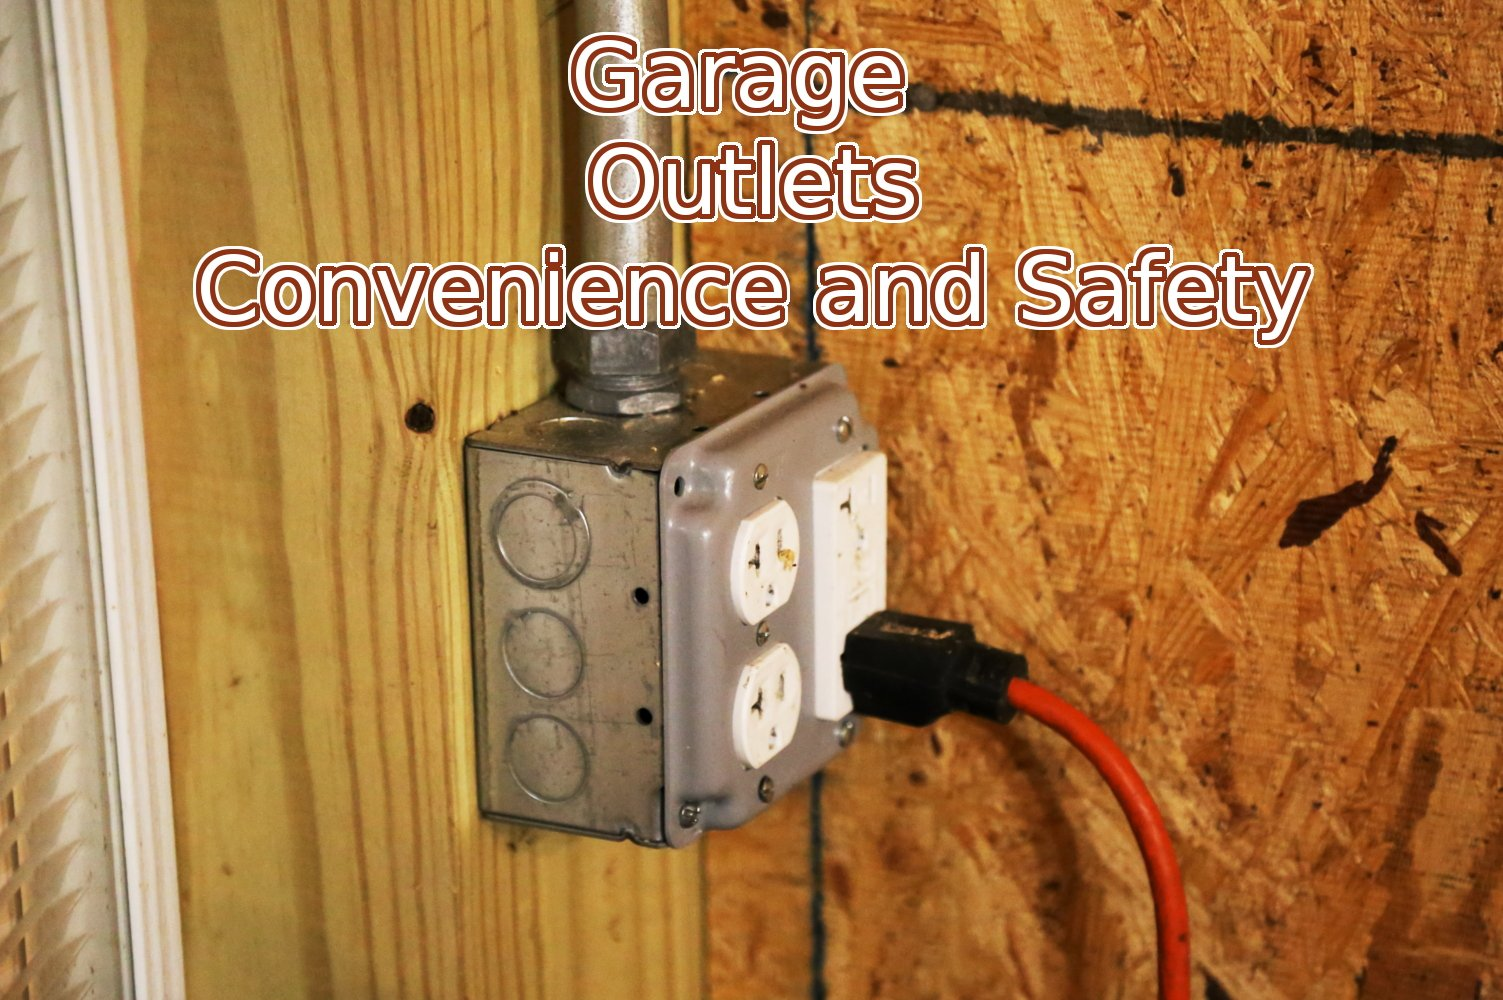 Electrician in Crofton garage outlets